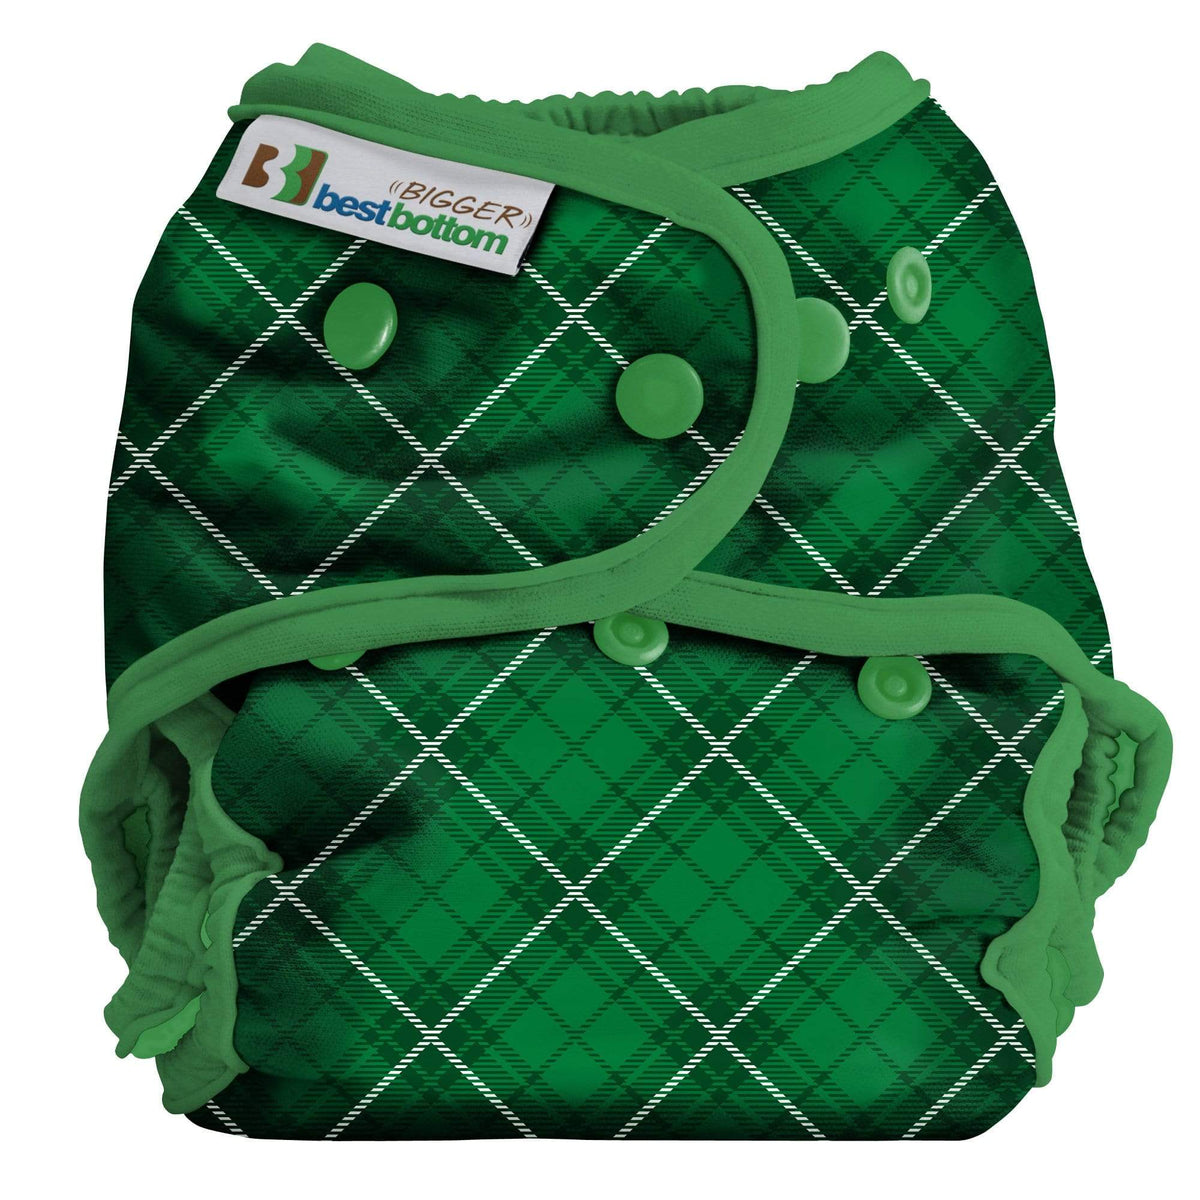 Best Bottom All In Two Diaper Cover - Paddy Plaid